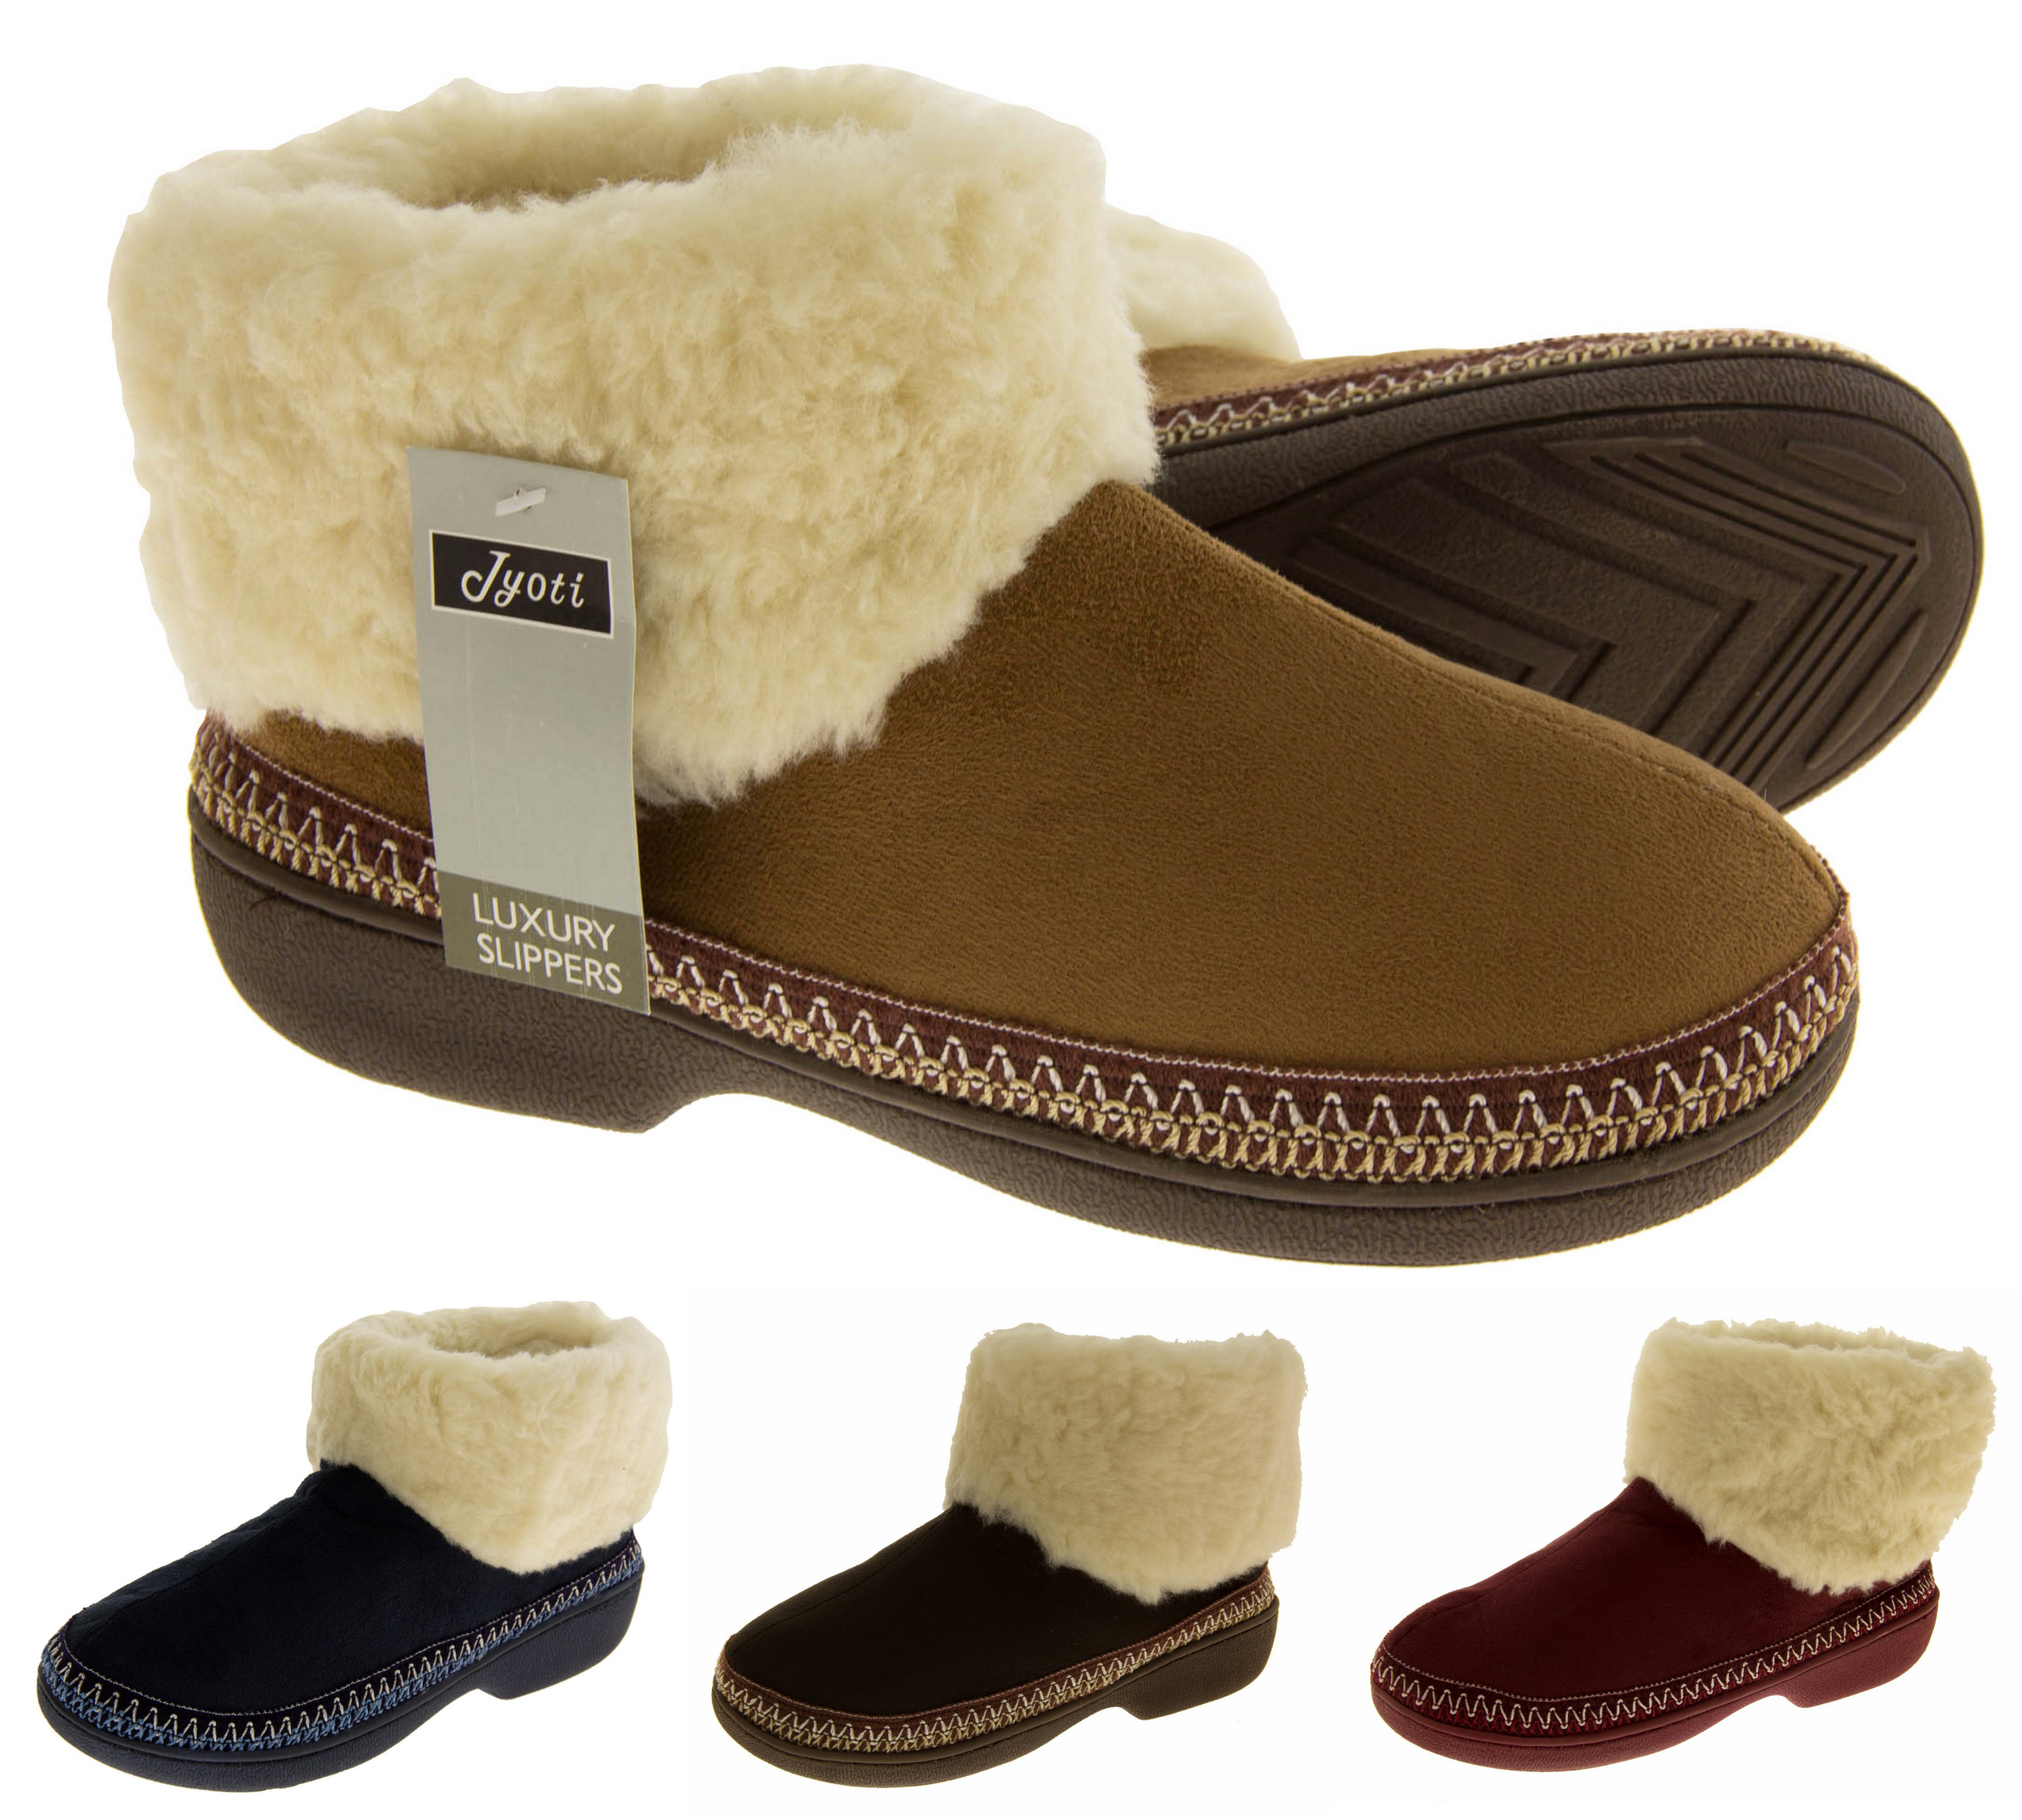 Stay comfortable in women's slippers. Women's slippers are a loungewear essential. No matter the time of year or the temperature, the plush materials and fashionable designs are great for morning routines and kicking back .